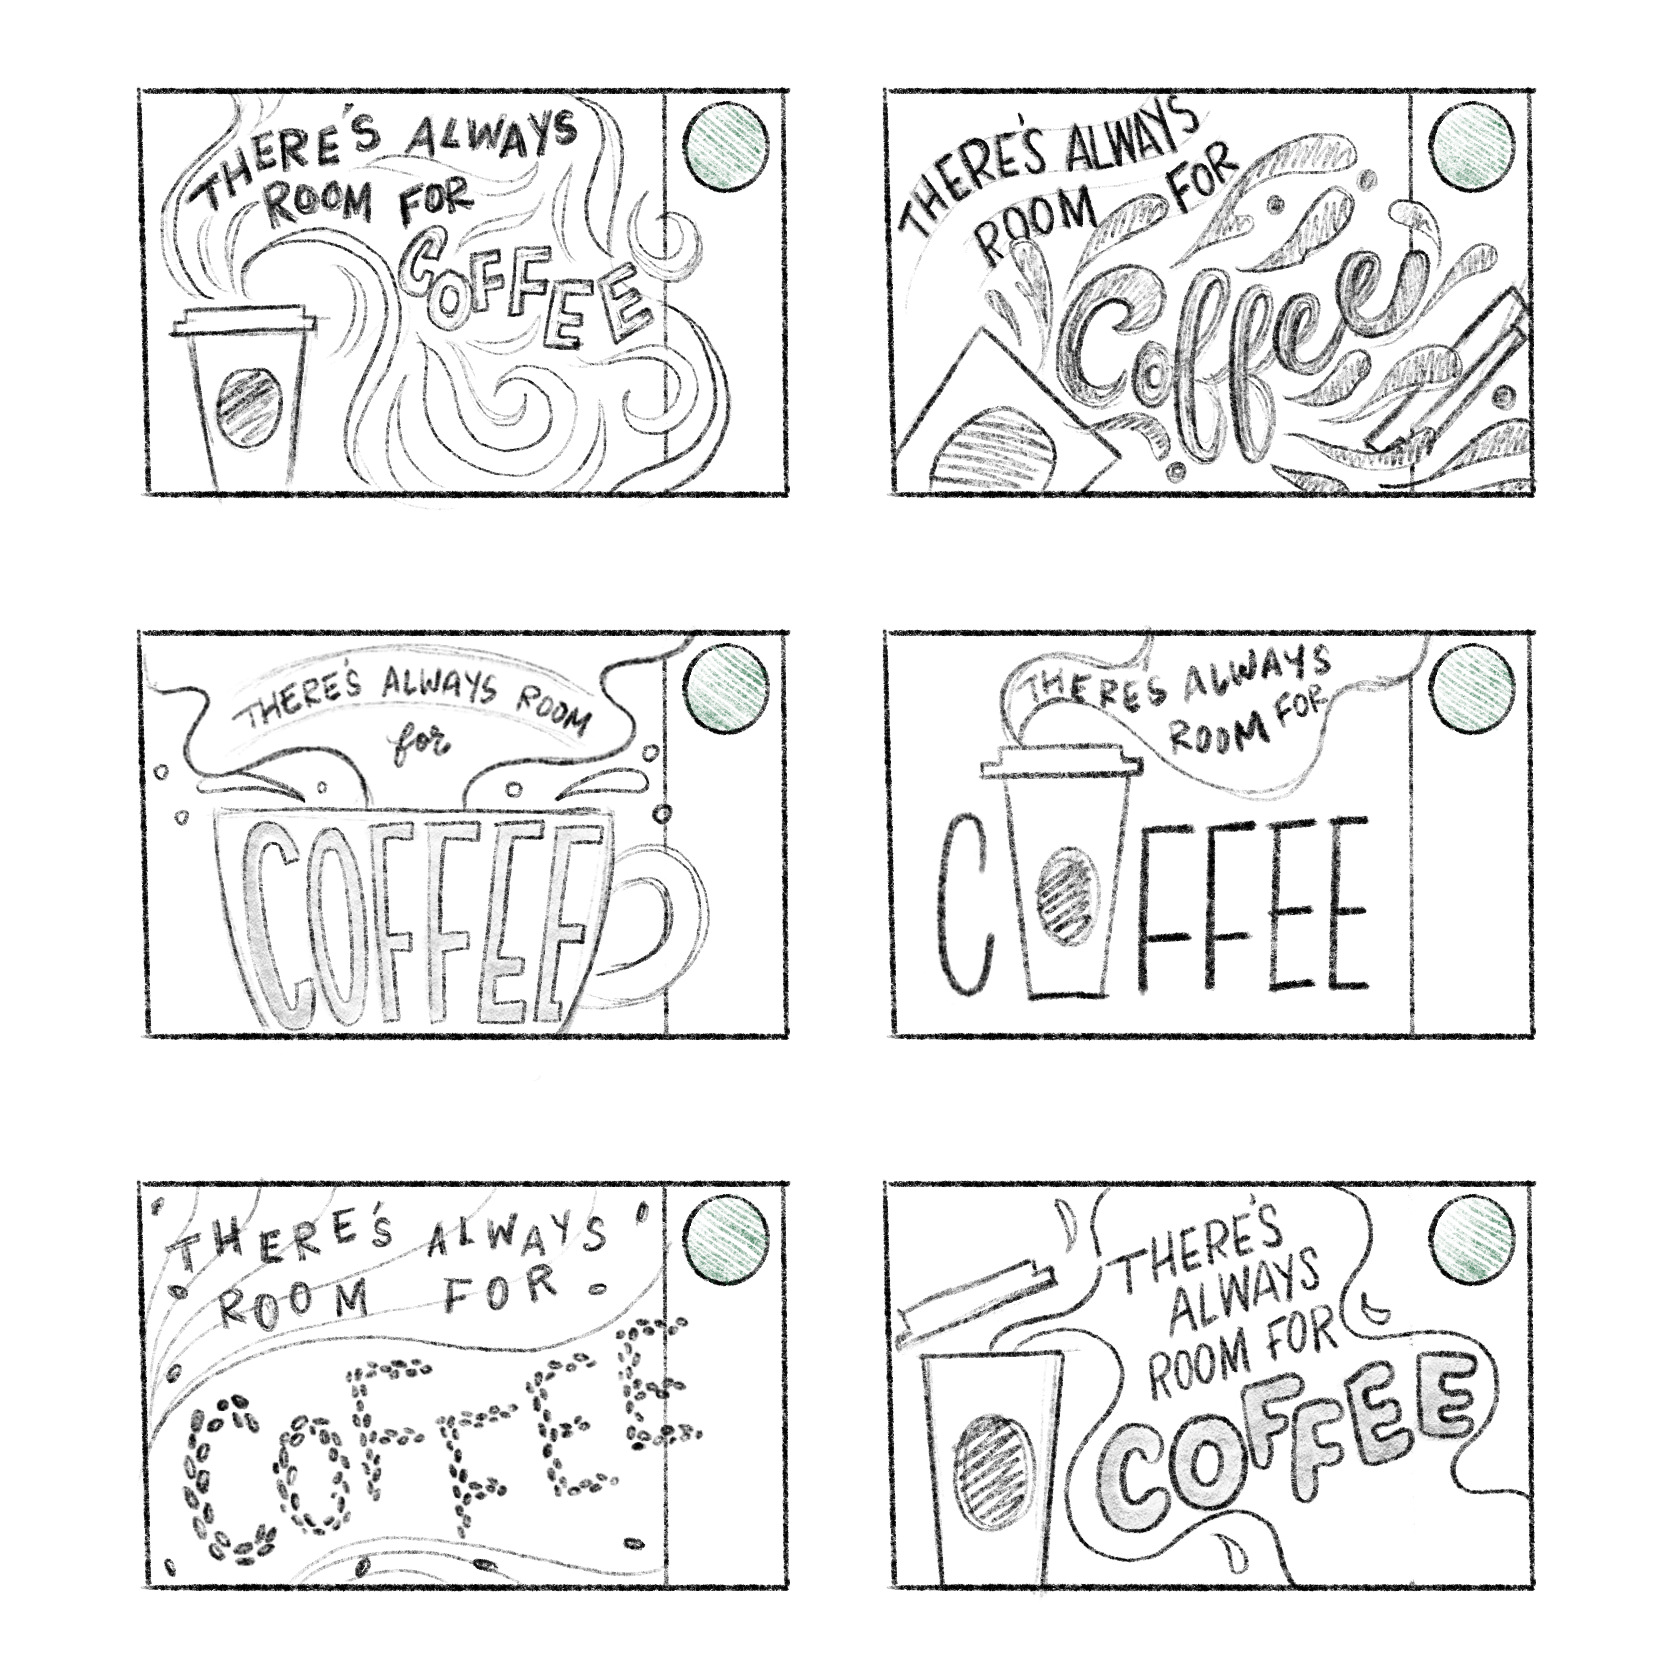 starbucks-gift-card-sketches2